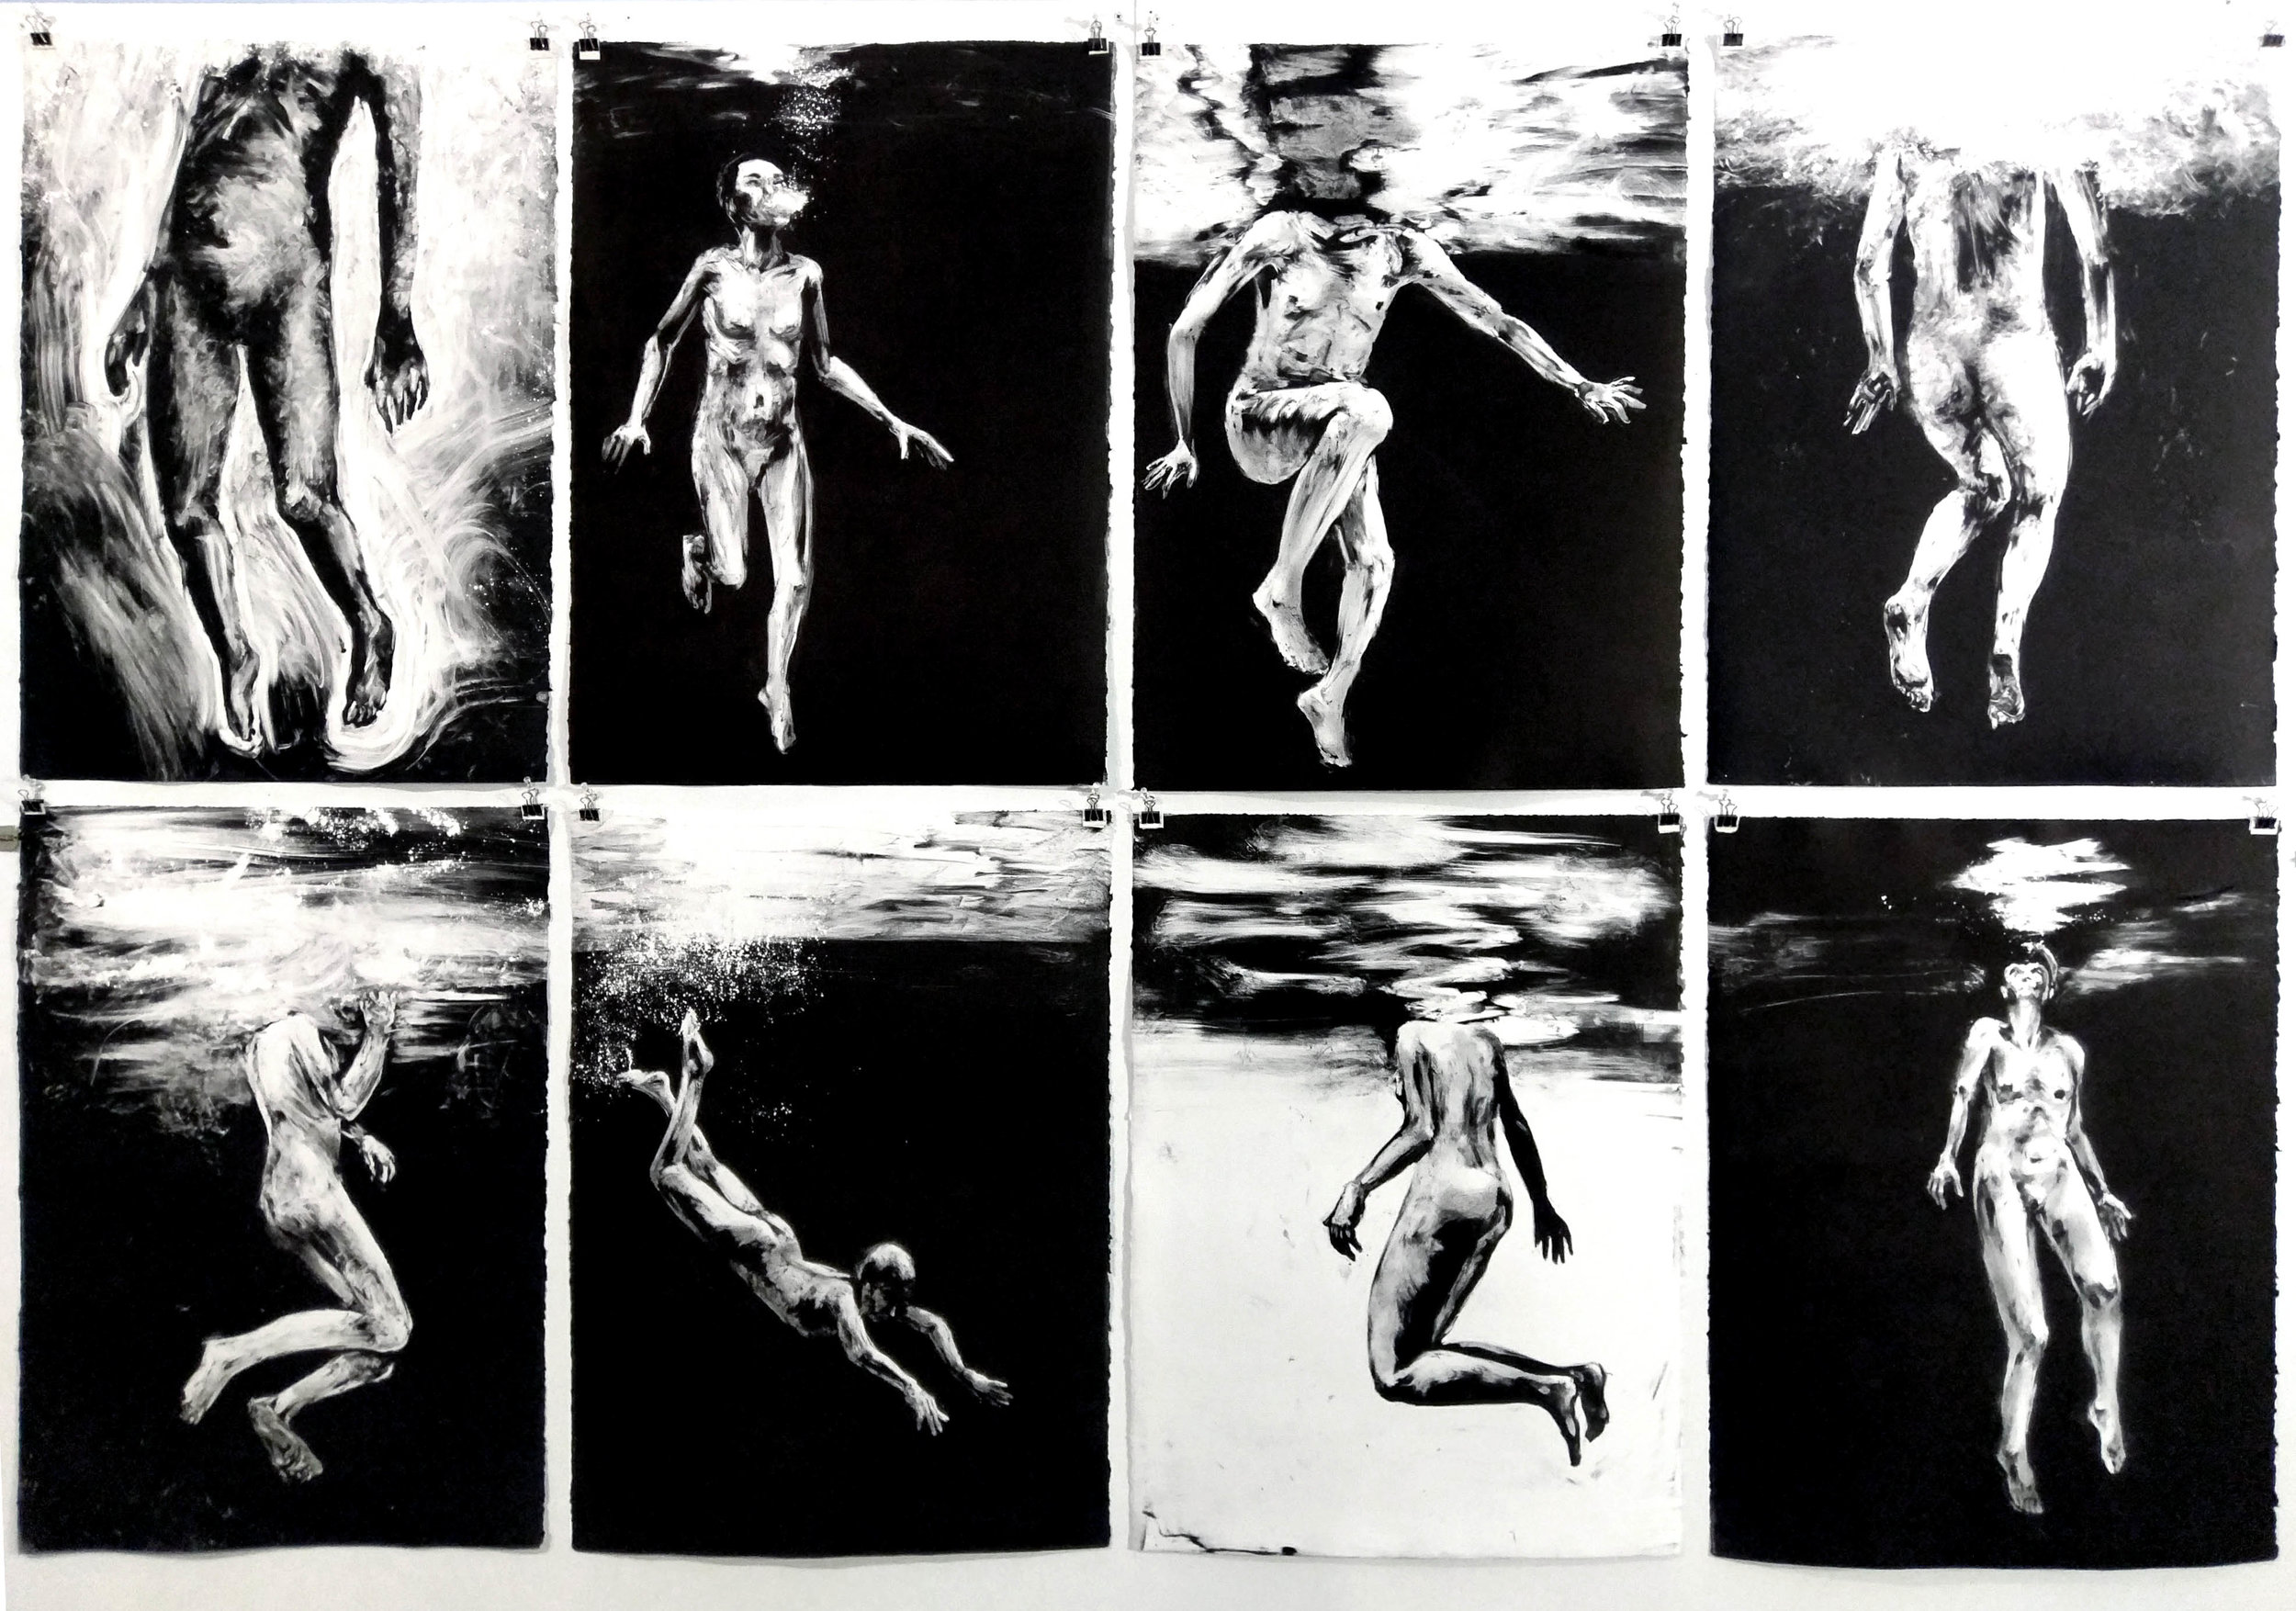 Swimmers-Figure Studies